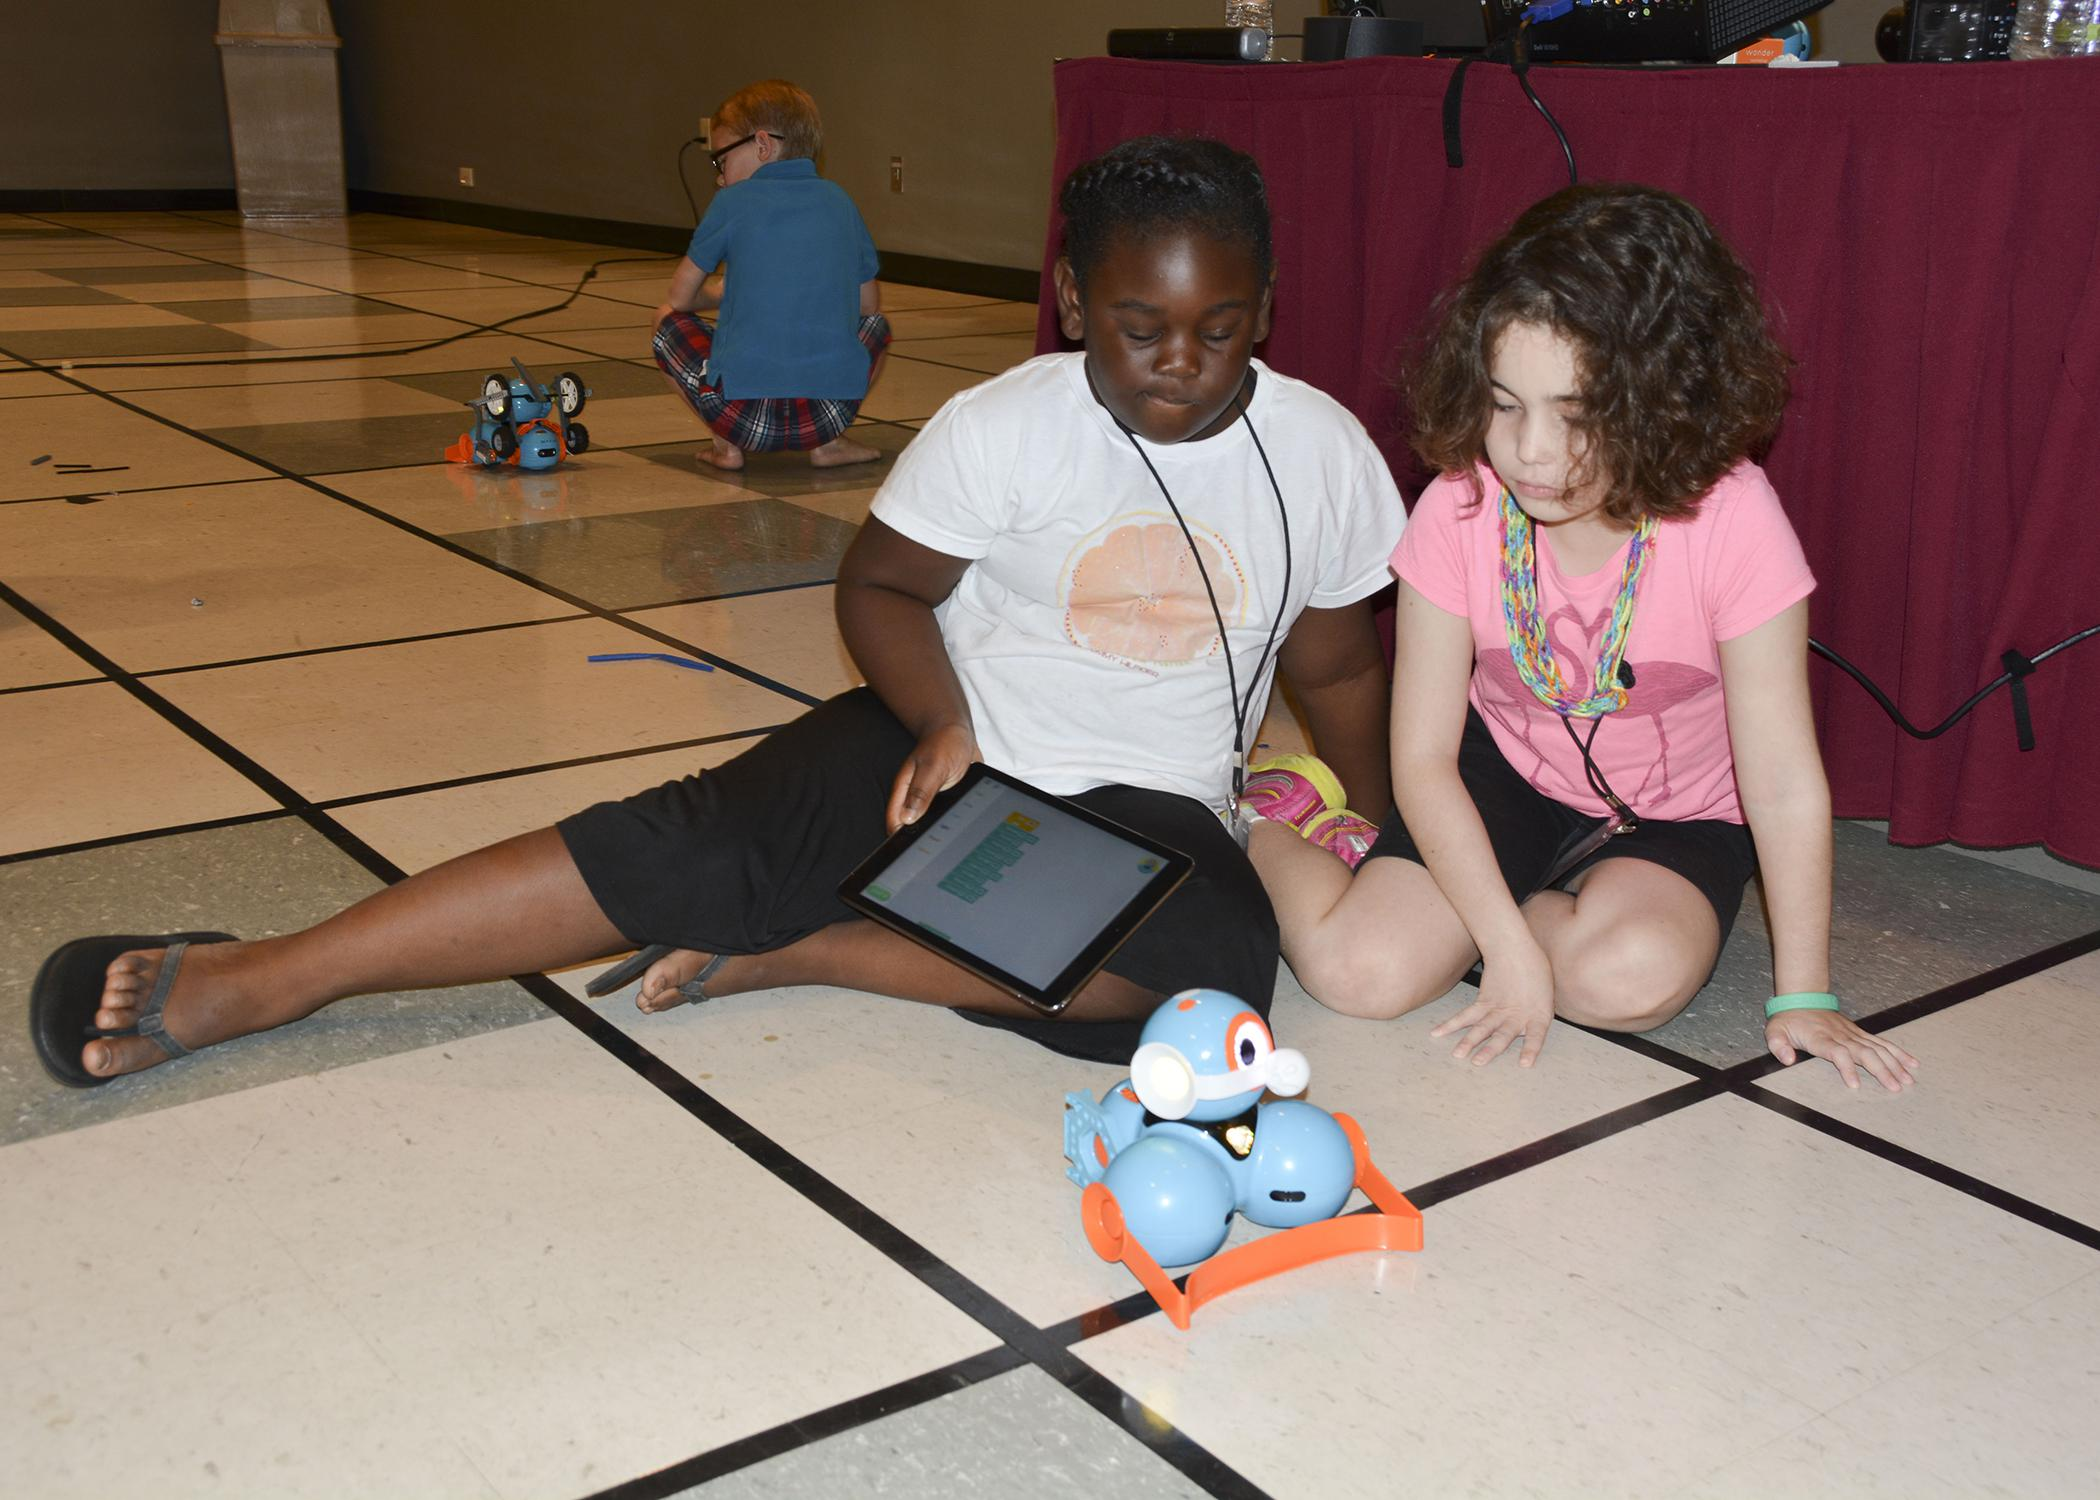 Samyra Harris, left, and Julia Schloemer focus intently on their Dash robot during the 4-H Cloverbud Robotic Camp at Mississippi State University on July 7, 2015. (Photo by MSU Ag Communications/Linda Breazeale)